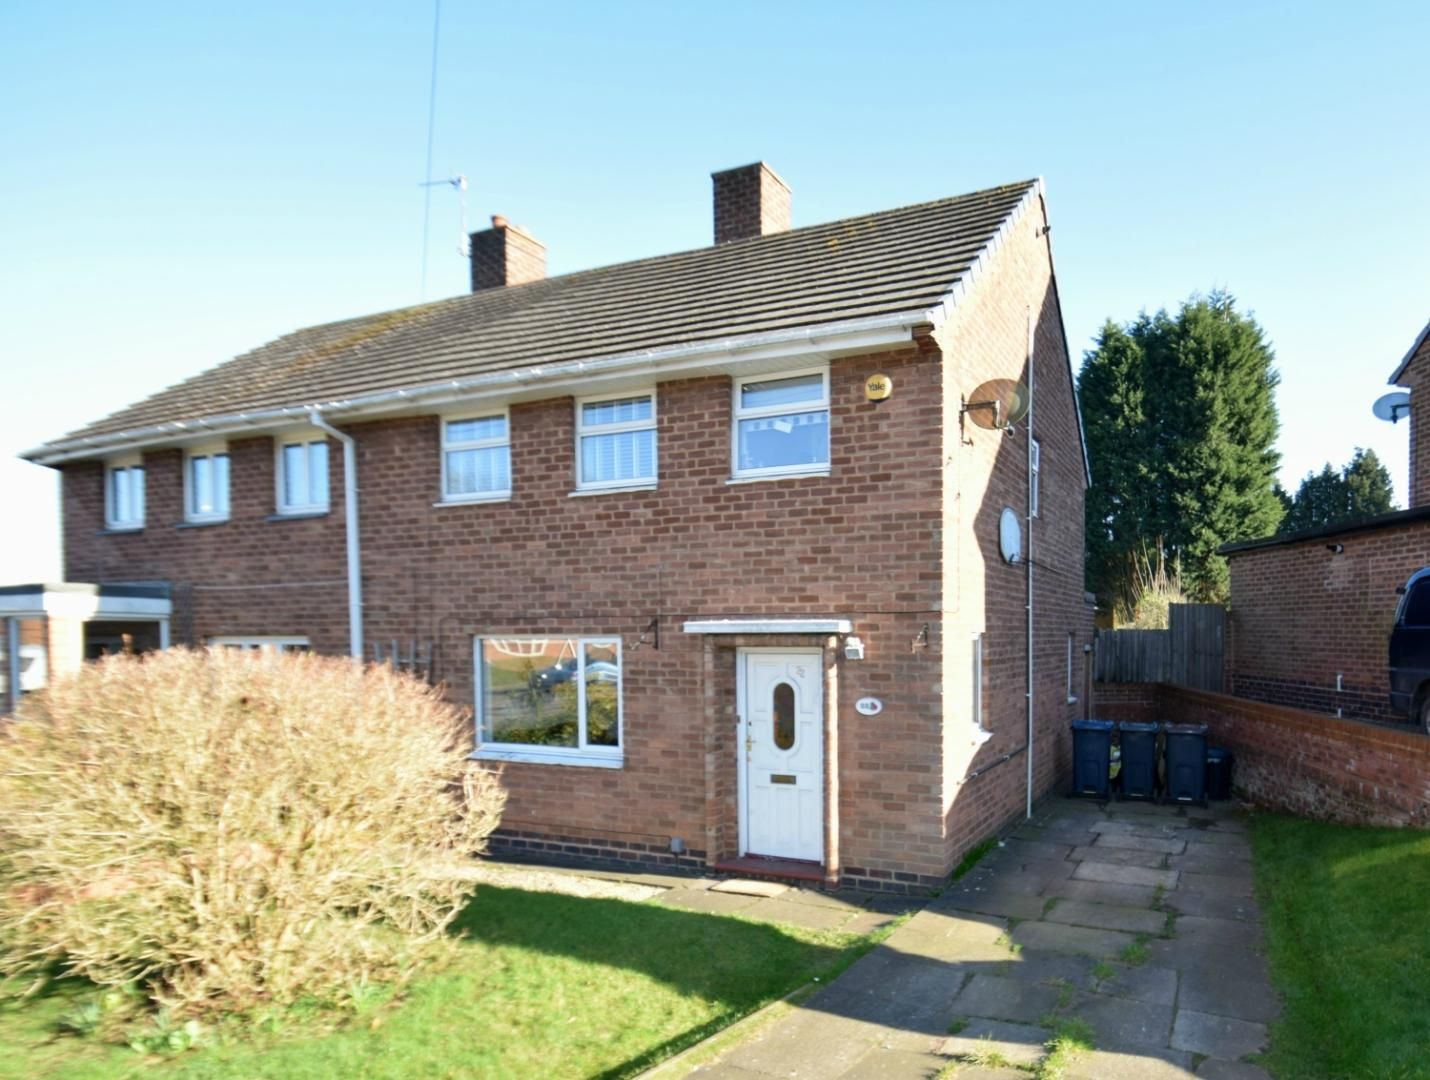 3 bed semi-detached for sale in Shepley Road, Rednal  - Property Image 1